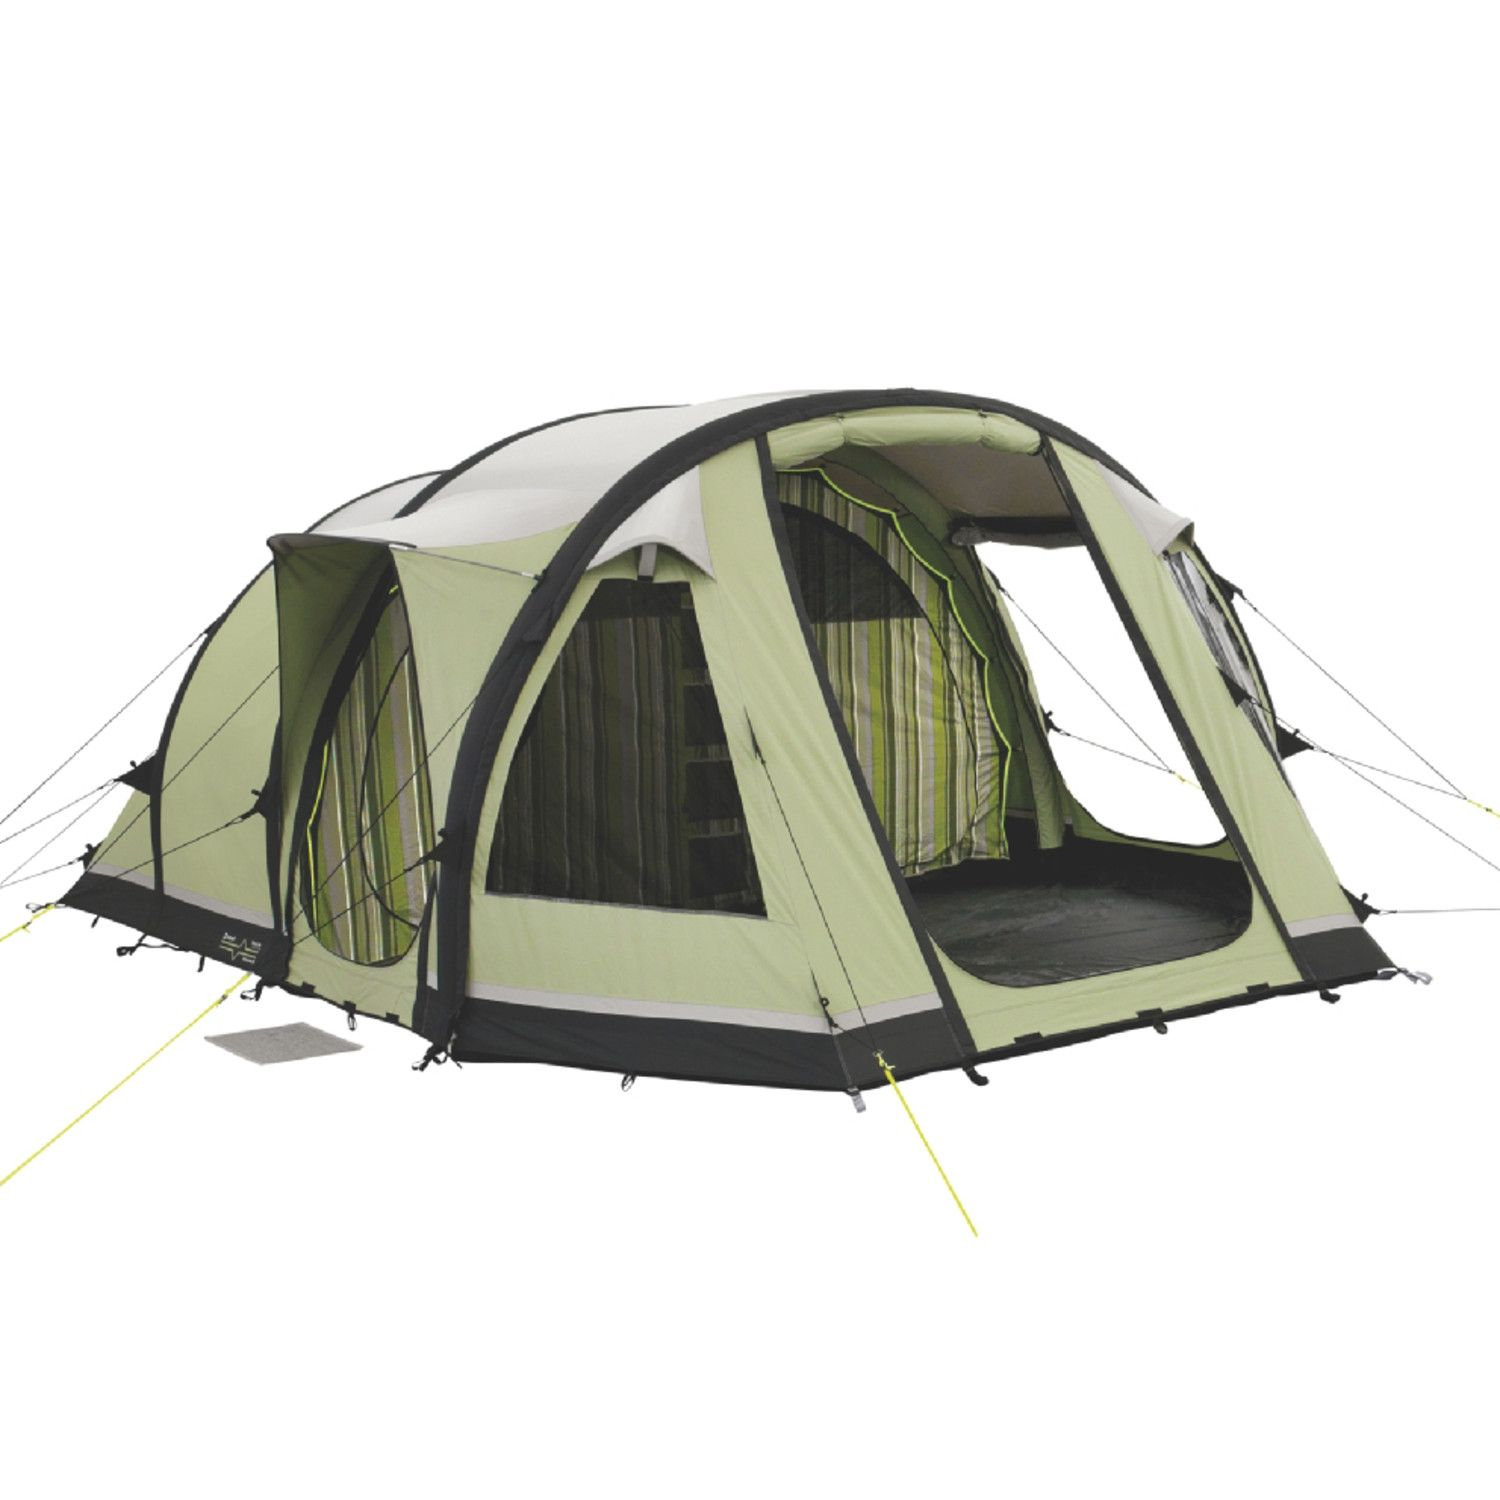 Outwell Concorde M Tent 2014  sc 1 st  Pinterest & Outwell Concorde M Tent 2014 | 2015 Idaho | Tent camping Air tent ...